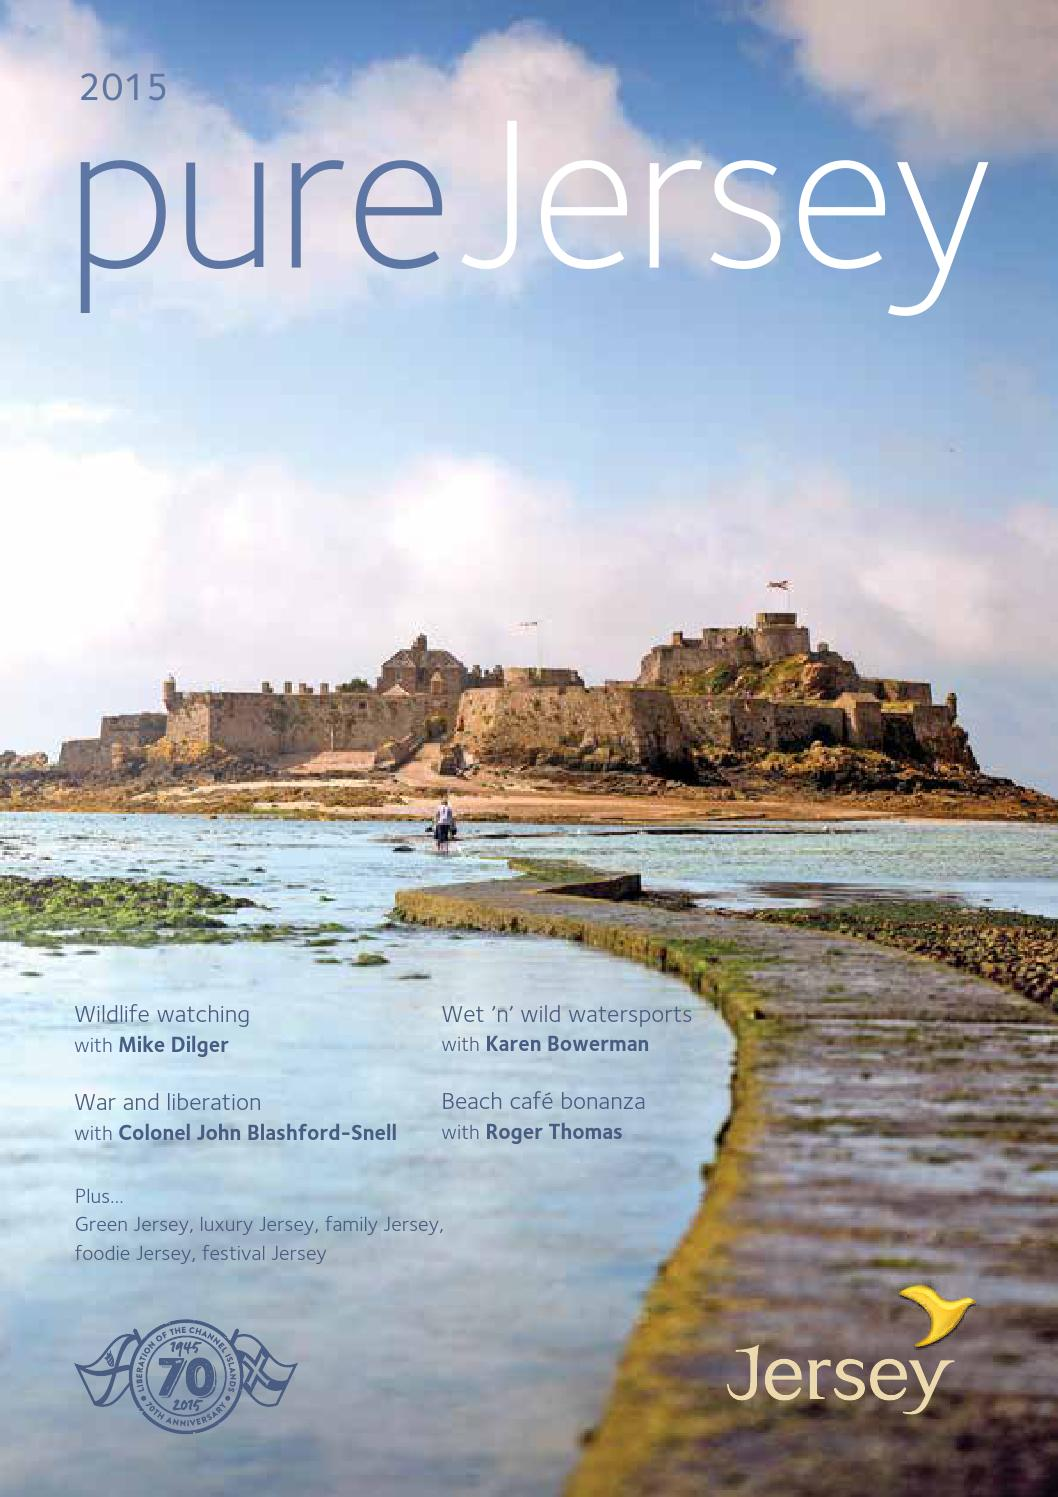 c7903b02cd0 Pure Jersey Holiday Brochure 2015 by Visit Jersey - issuu